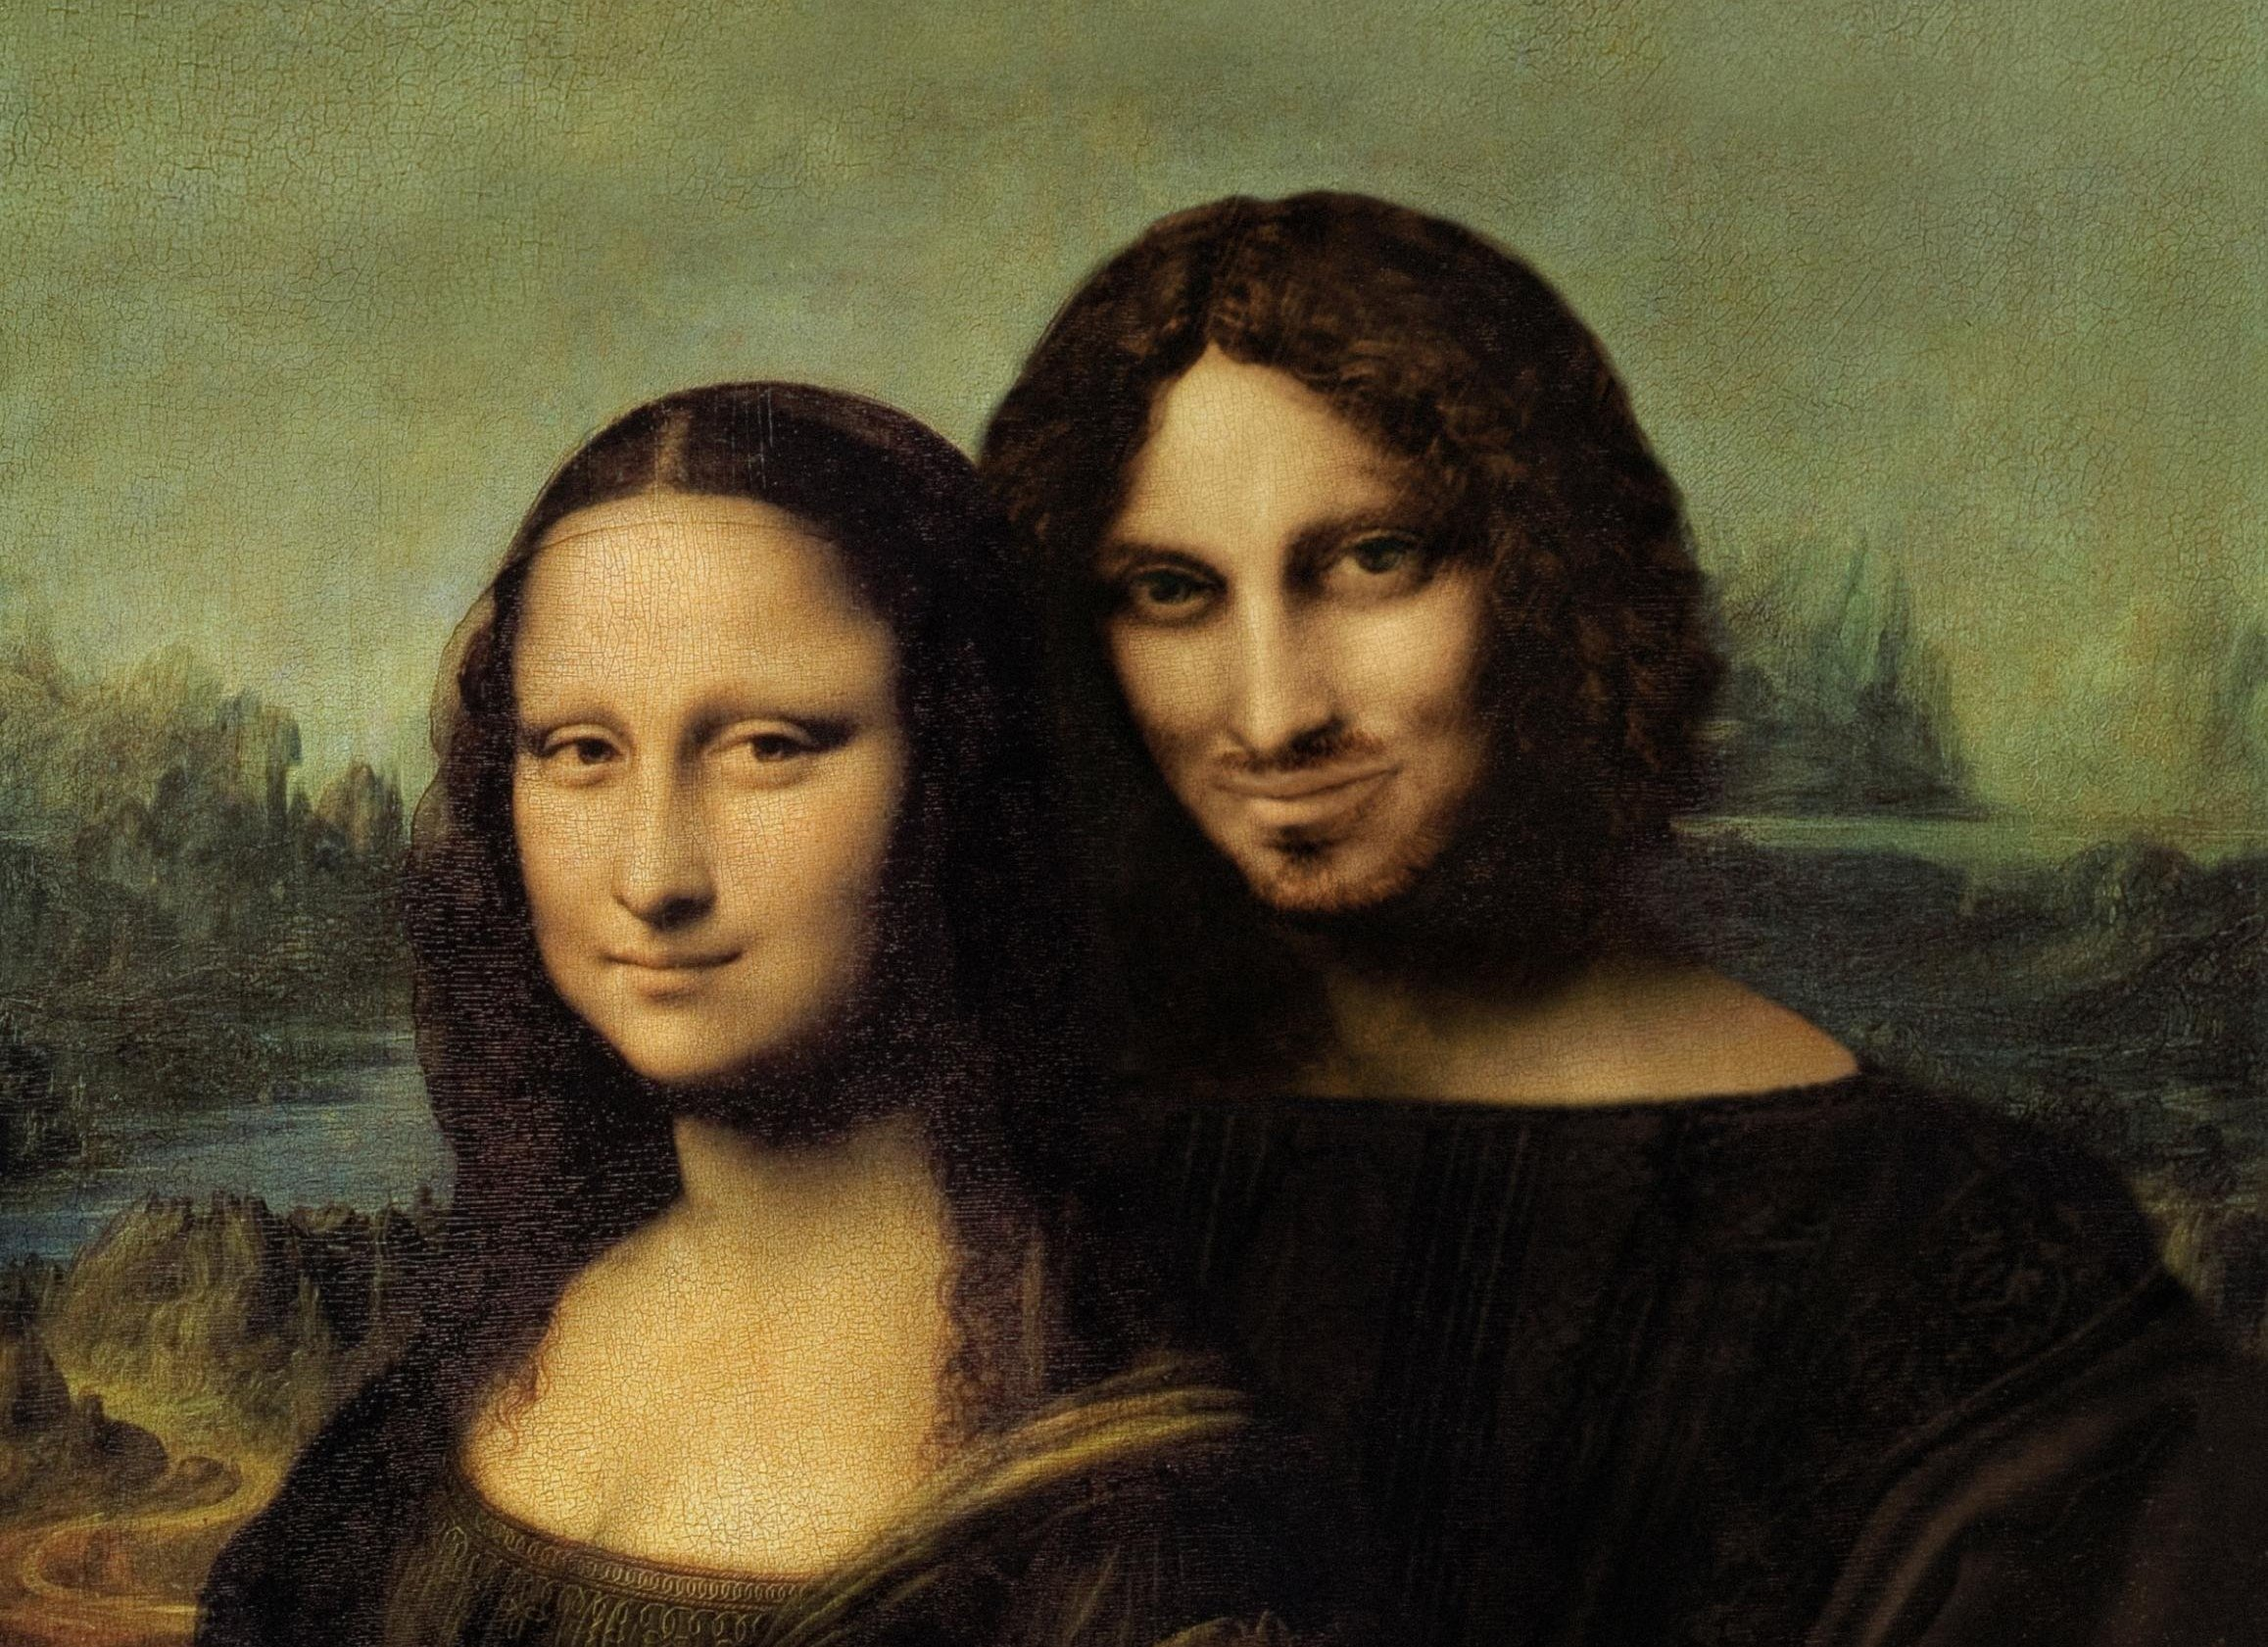 a_online-dating-service-mona-lisa-original-36268.jpg